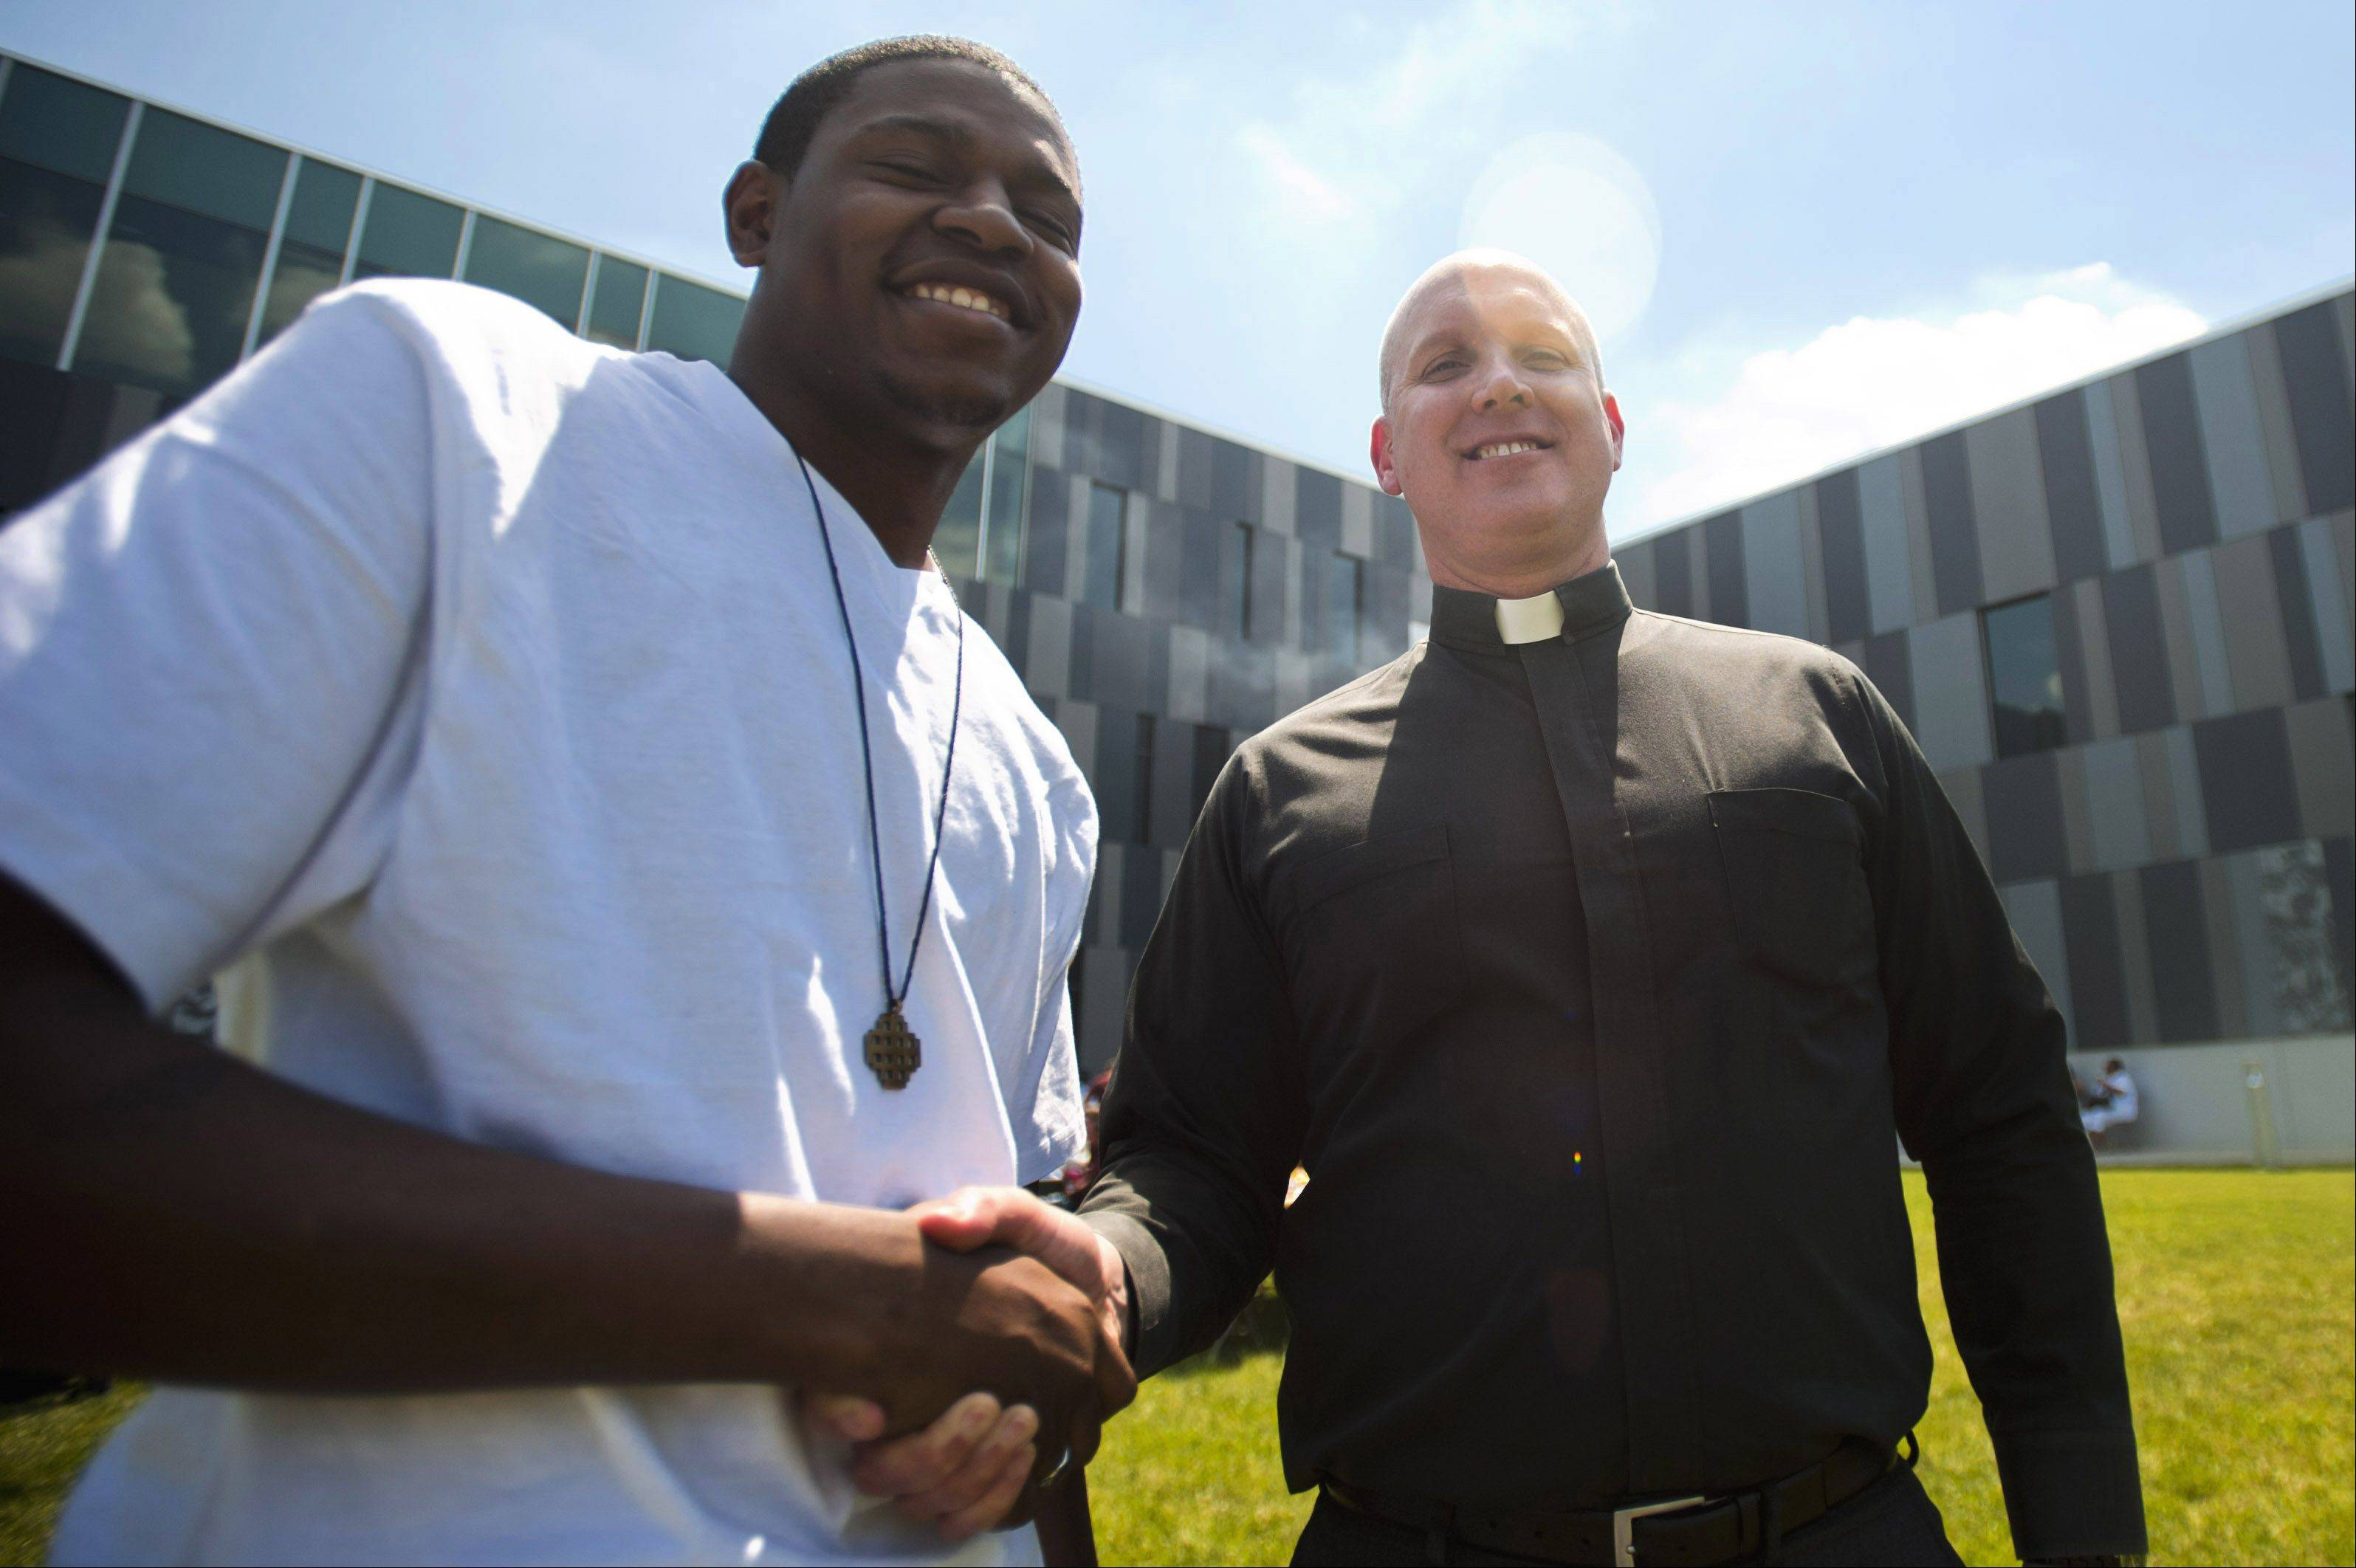 Father Christopher Devron and graduate Stanley Coleman shake hands at the Christ the King Jesuit College Preparatory School, where all 53 members of the school's first graduating class have been accepted into college.